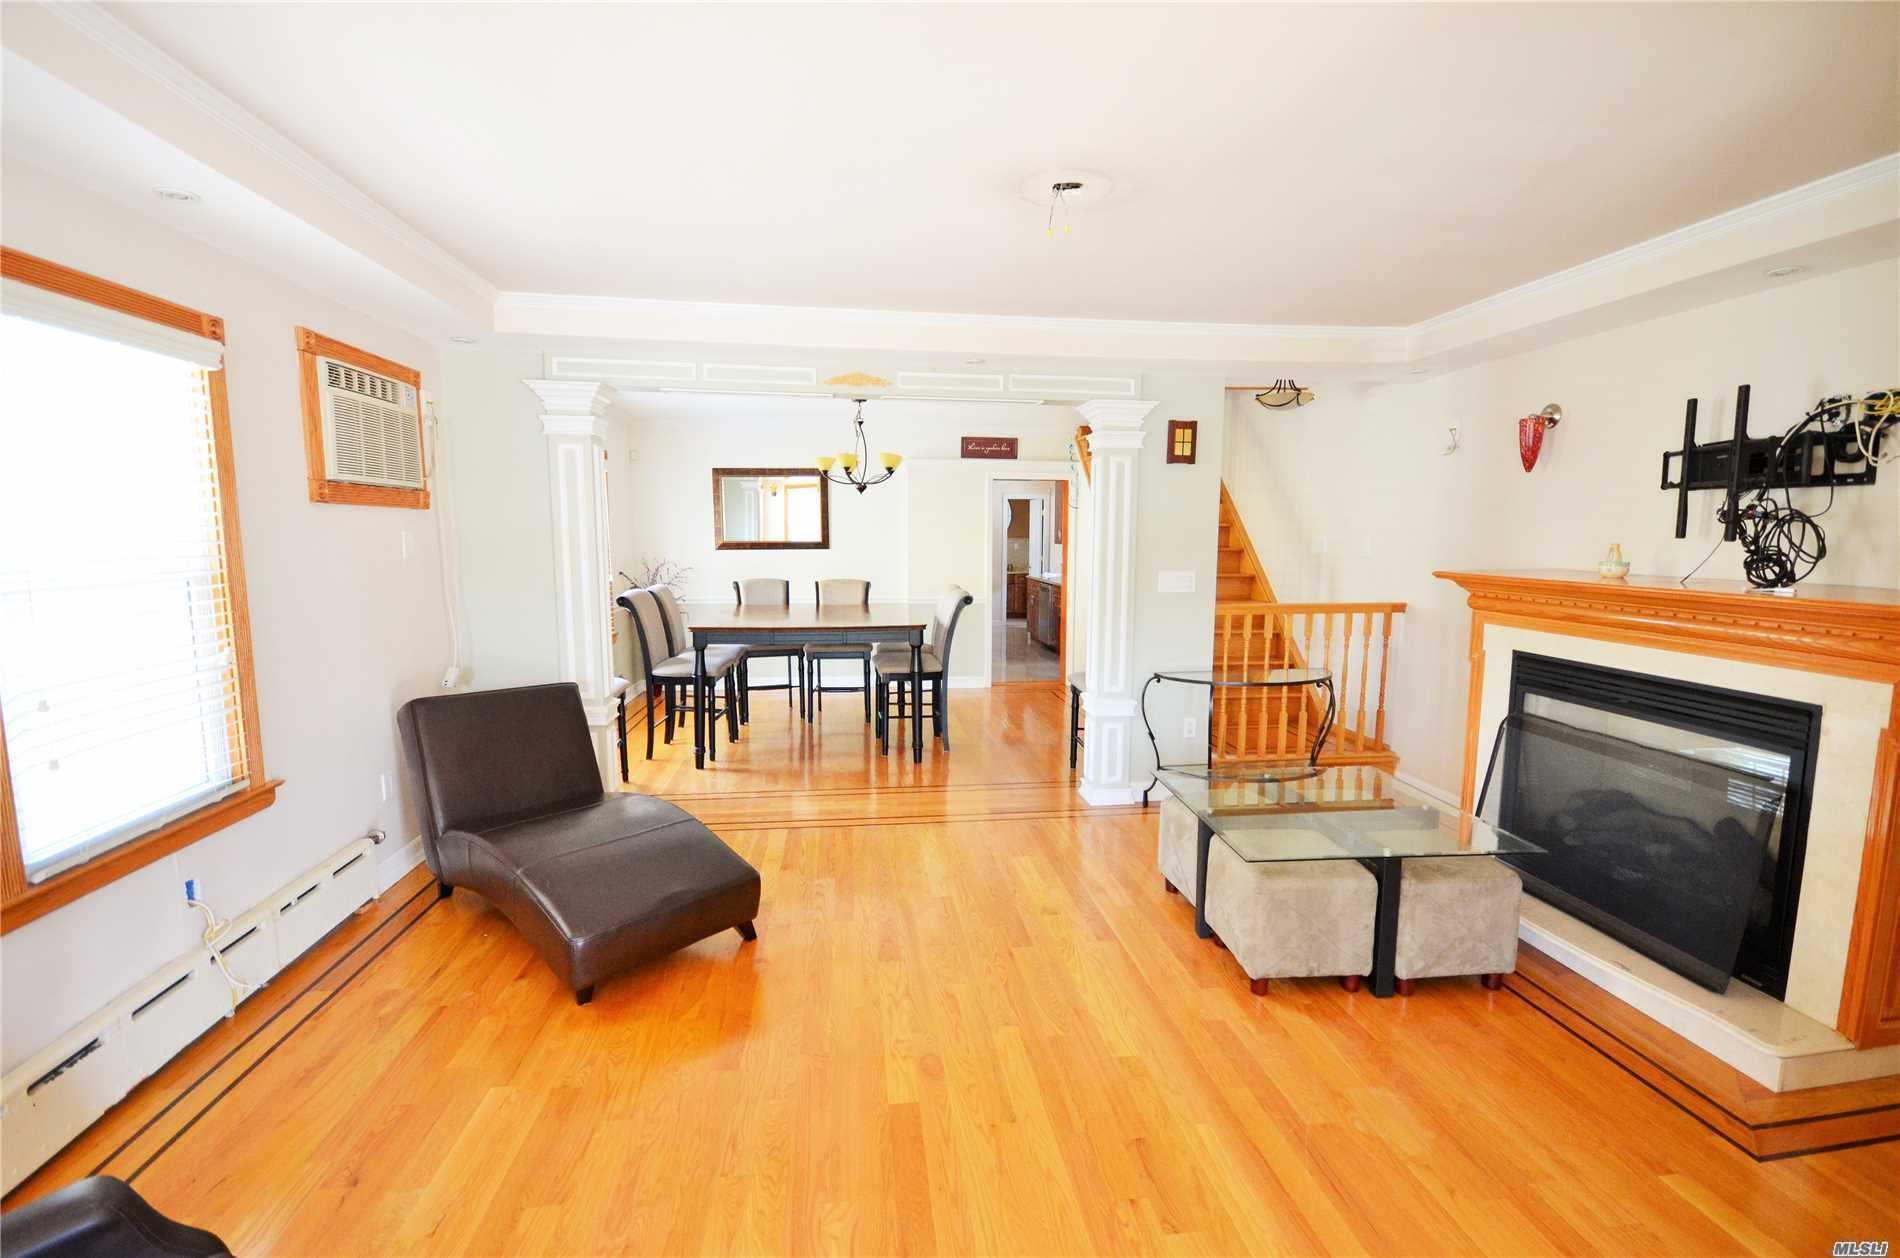 Gorgeous Home In A Fantastic Location. Move Right Into A Well Maintained, Sunny Home. 3 Bedrooms, 1.5 Baths,  40X100 Lot. Private Driveway With 1.5 Car Garage. 10 Mins Walk To Lirr Floral Park Station. Close To Schools, Shopping, Supermarkets, Transportation...